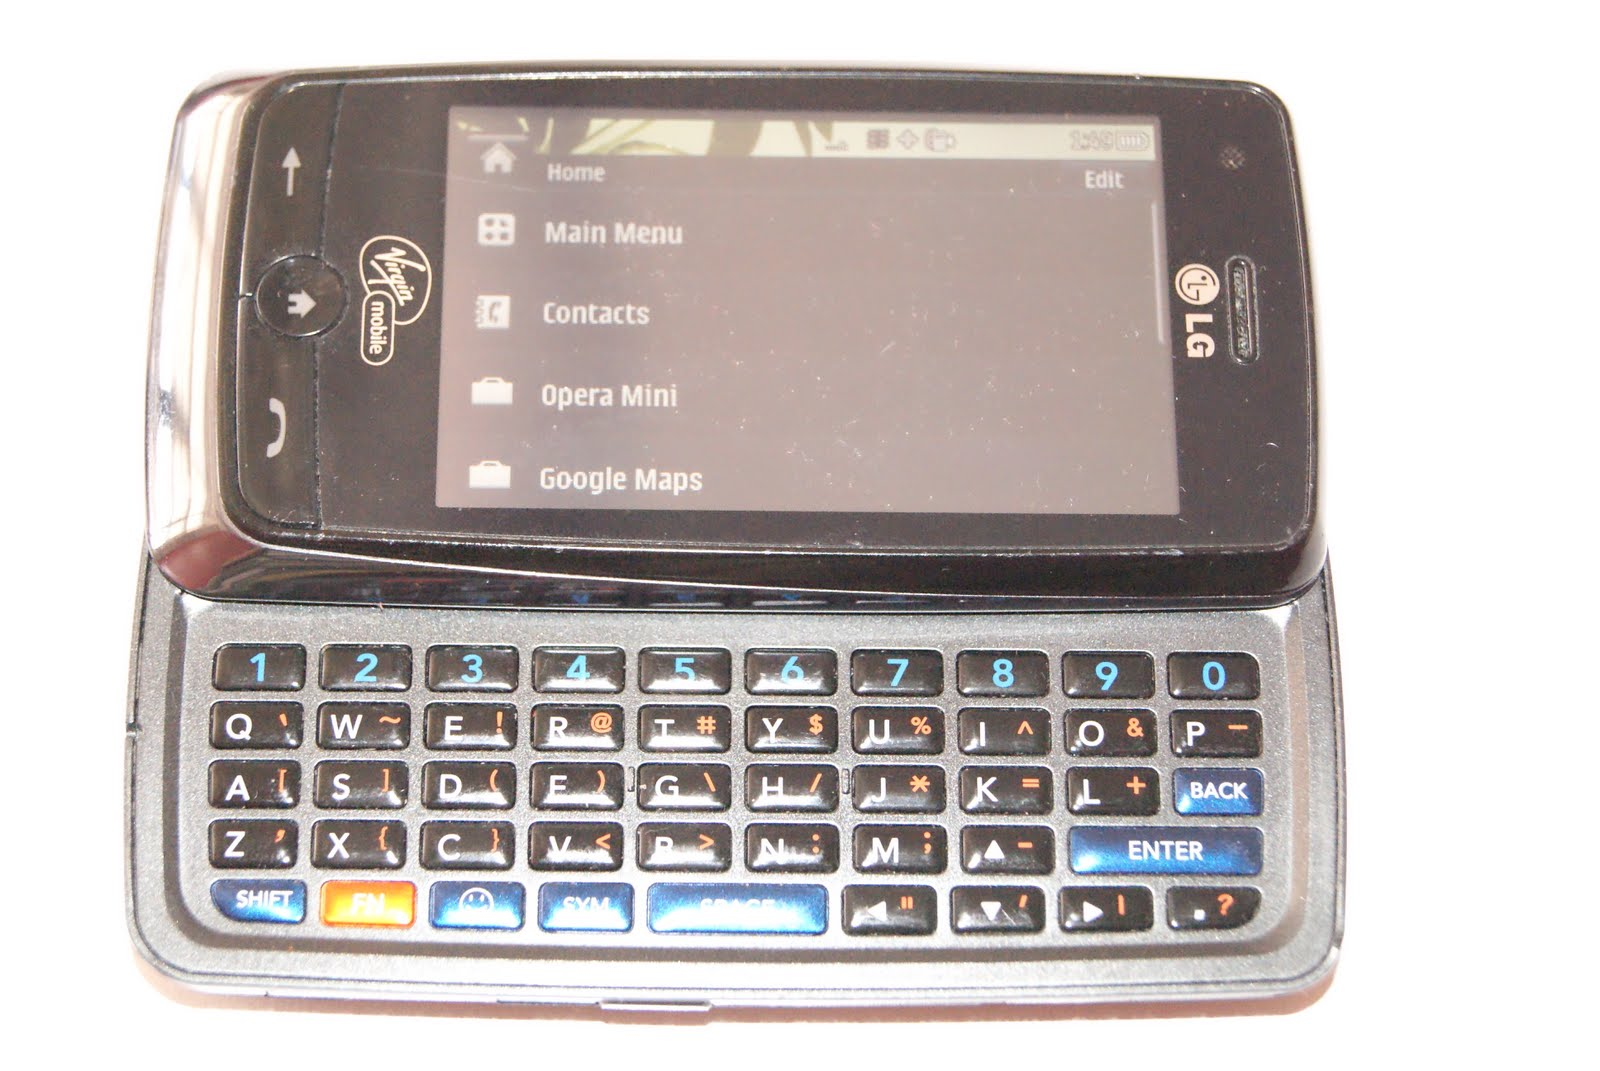 As you can see, it slides to a nice keypad which allows me to text and type  much faster. You can use it in it's closed position by touching the screen.